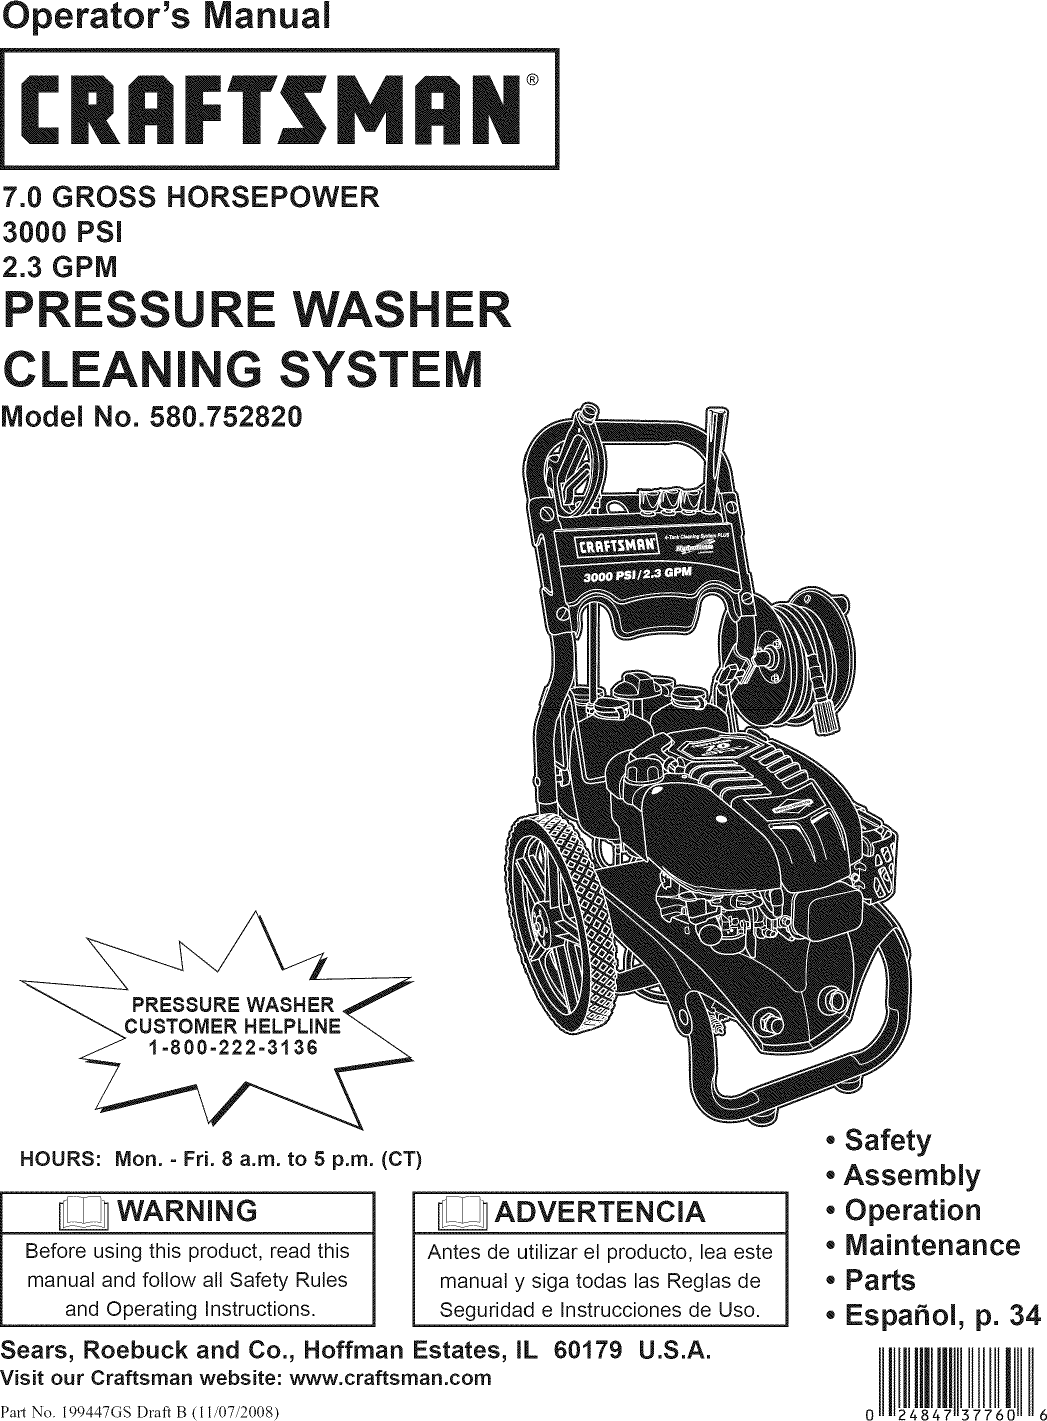 Craftsman 580752820 User Manual PRESSURE WASHER Manuals